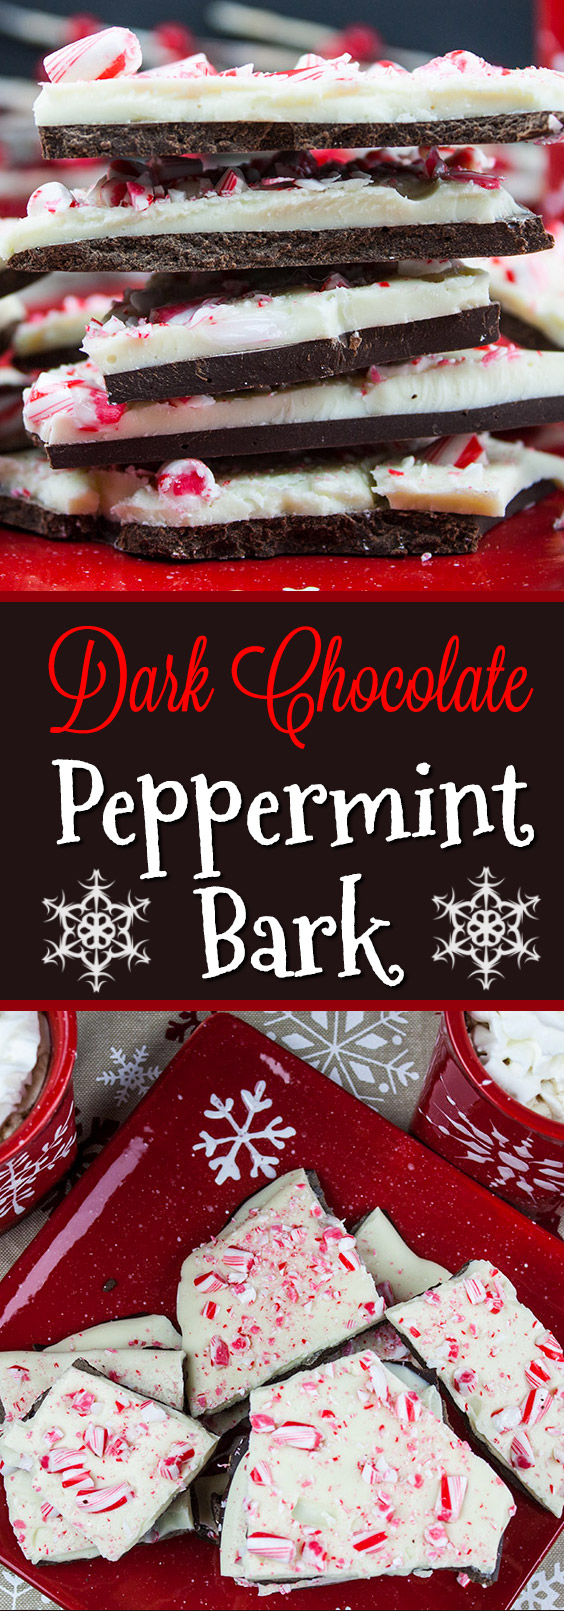 Dark Chocolate Peppermint Bark - One of the easiest holiday treats. Smooth, dark chocolate, creamy white chocolate studded with crushed candy canes! #holidays #dessert #christmas #candy #recipe #easy